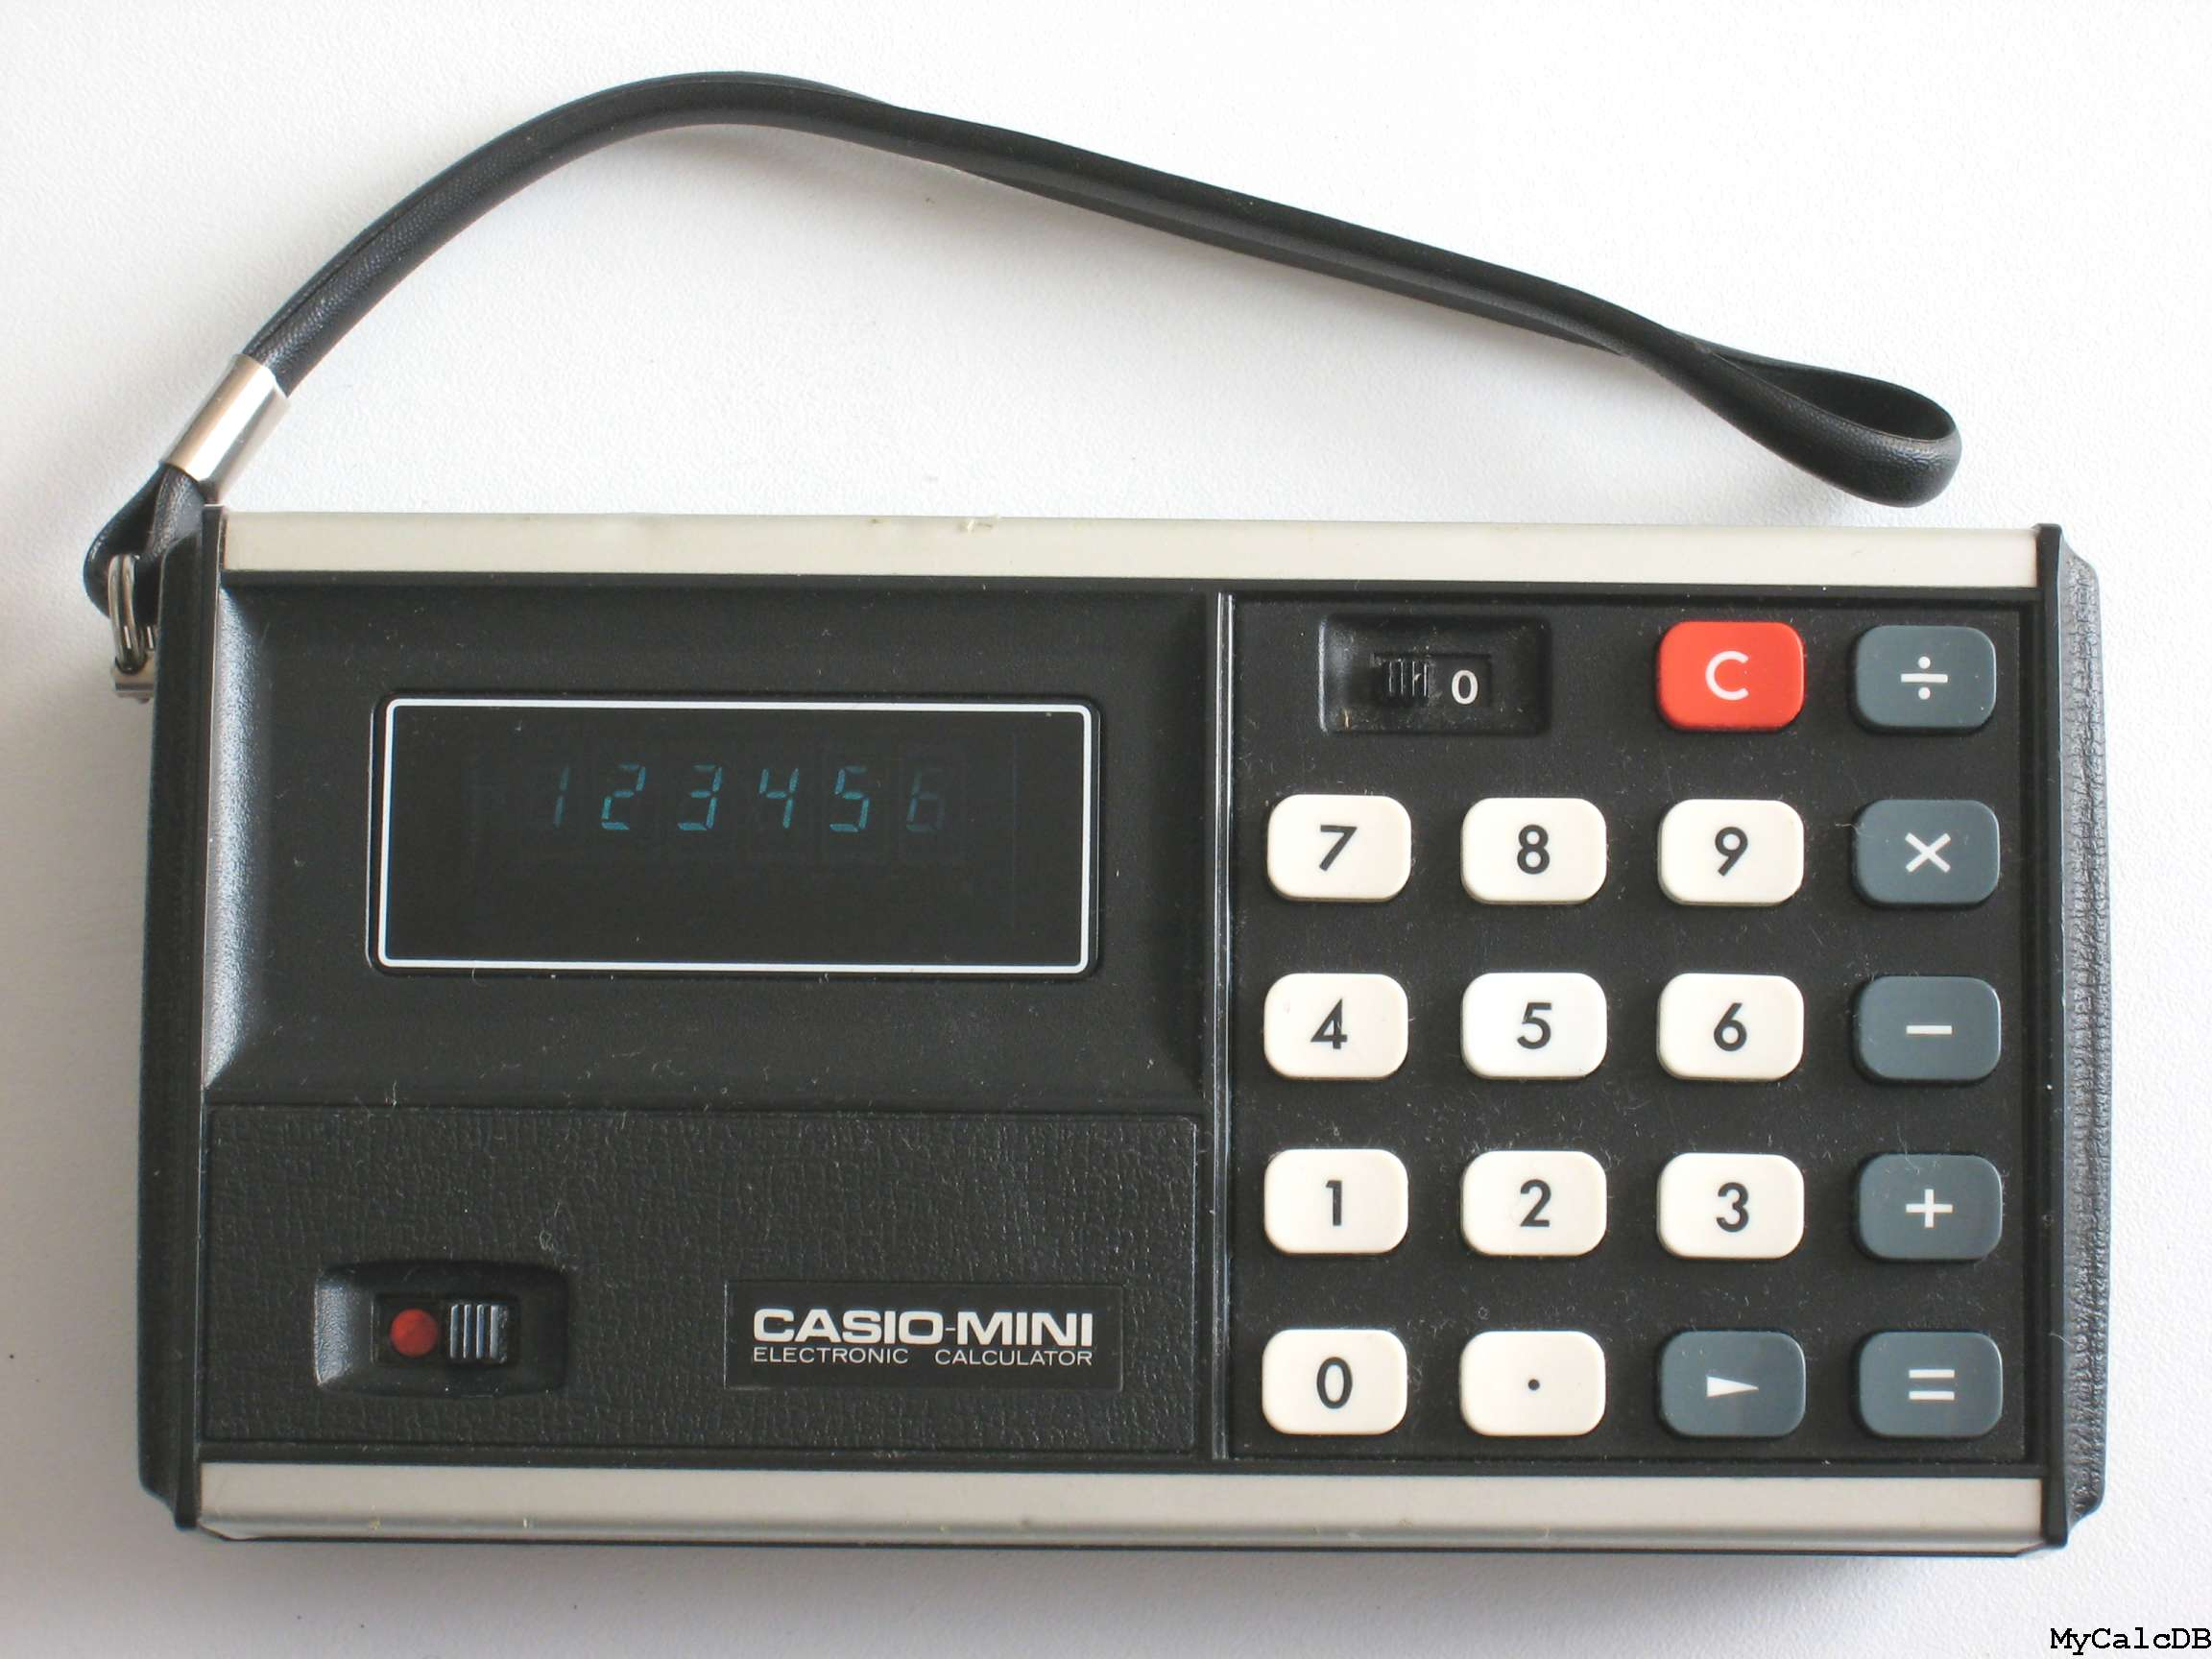 Casio MINI